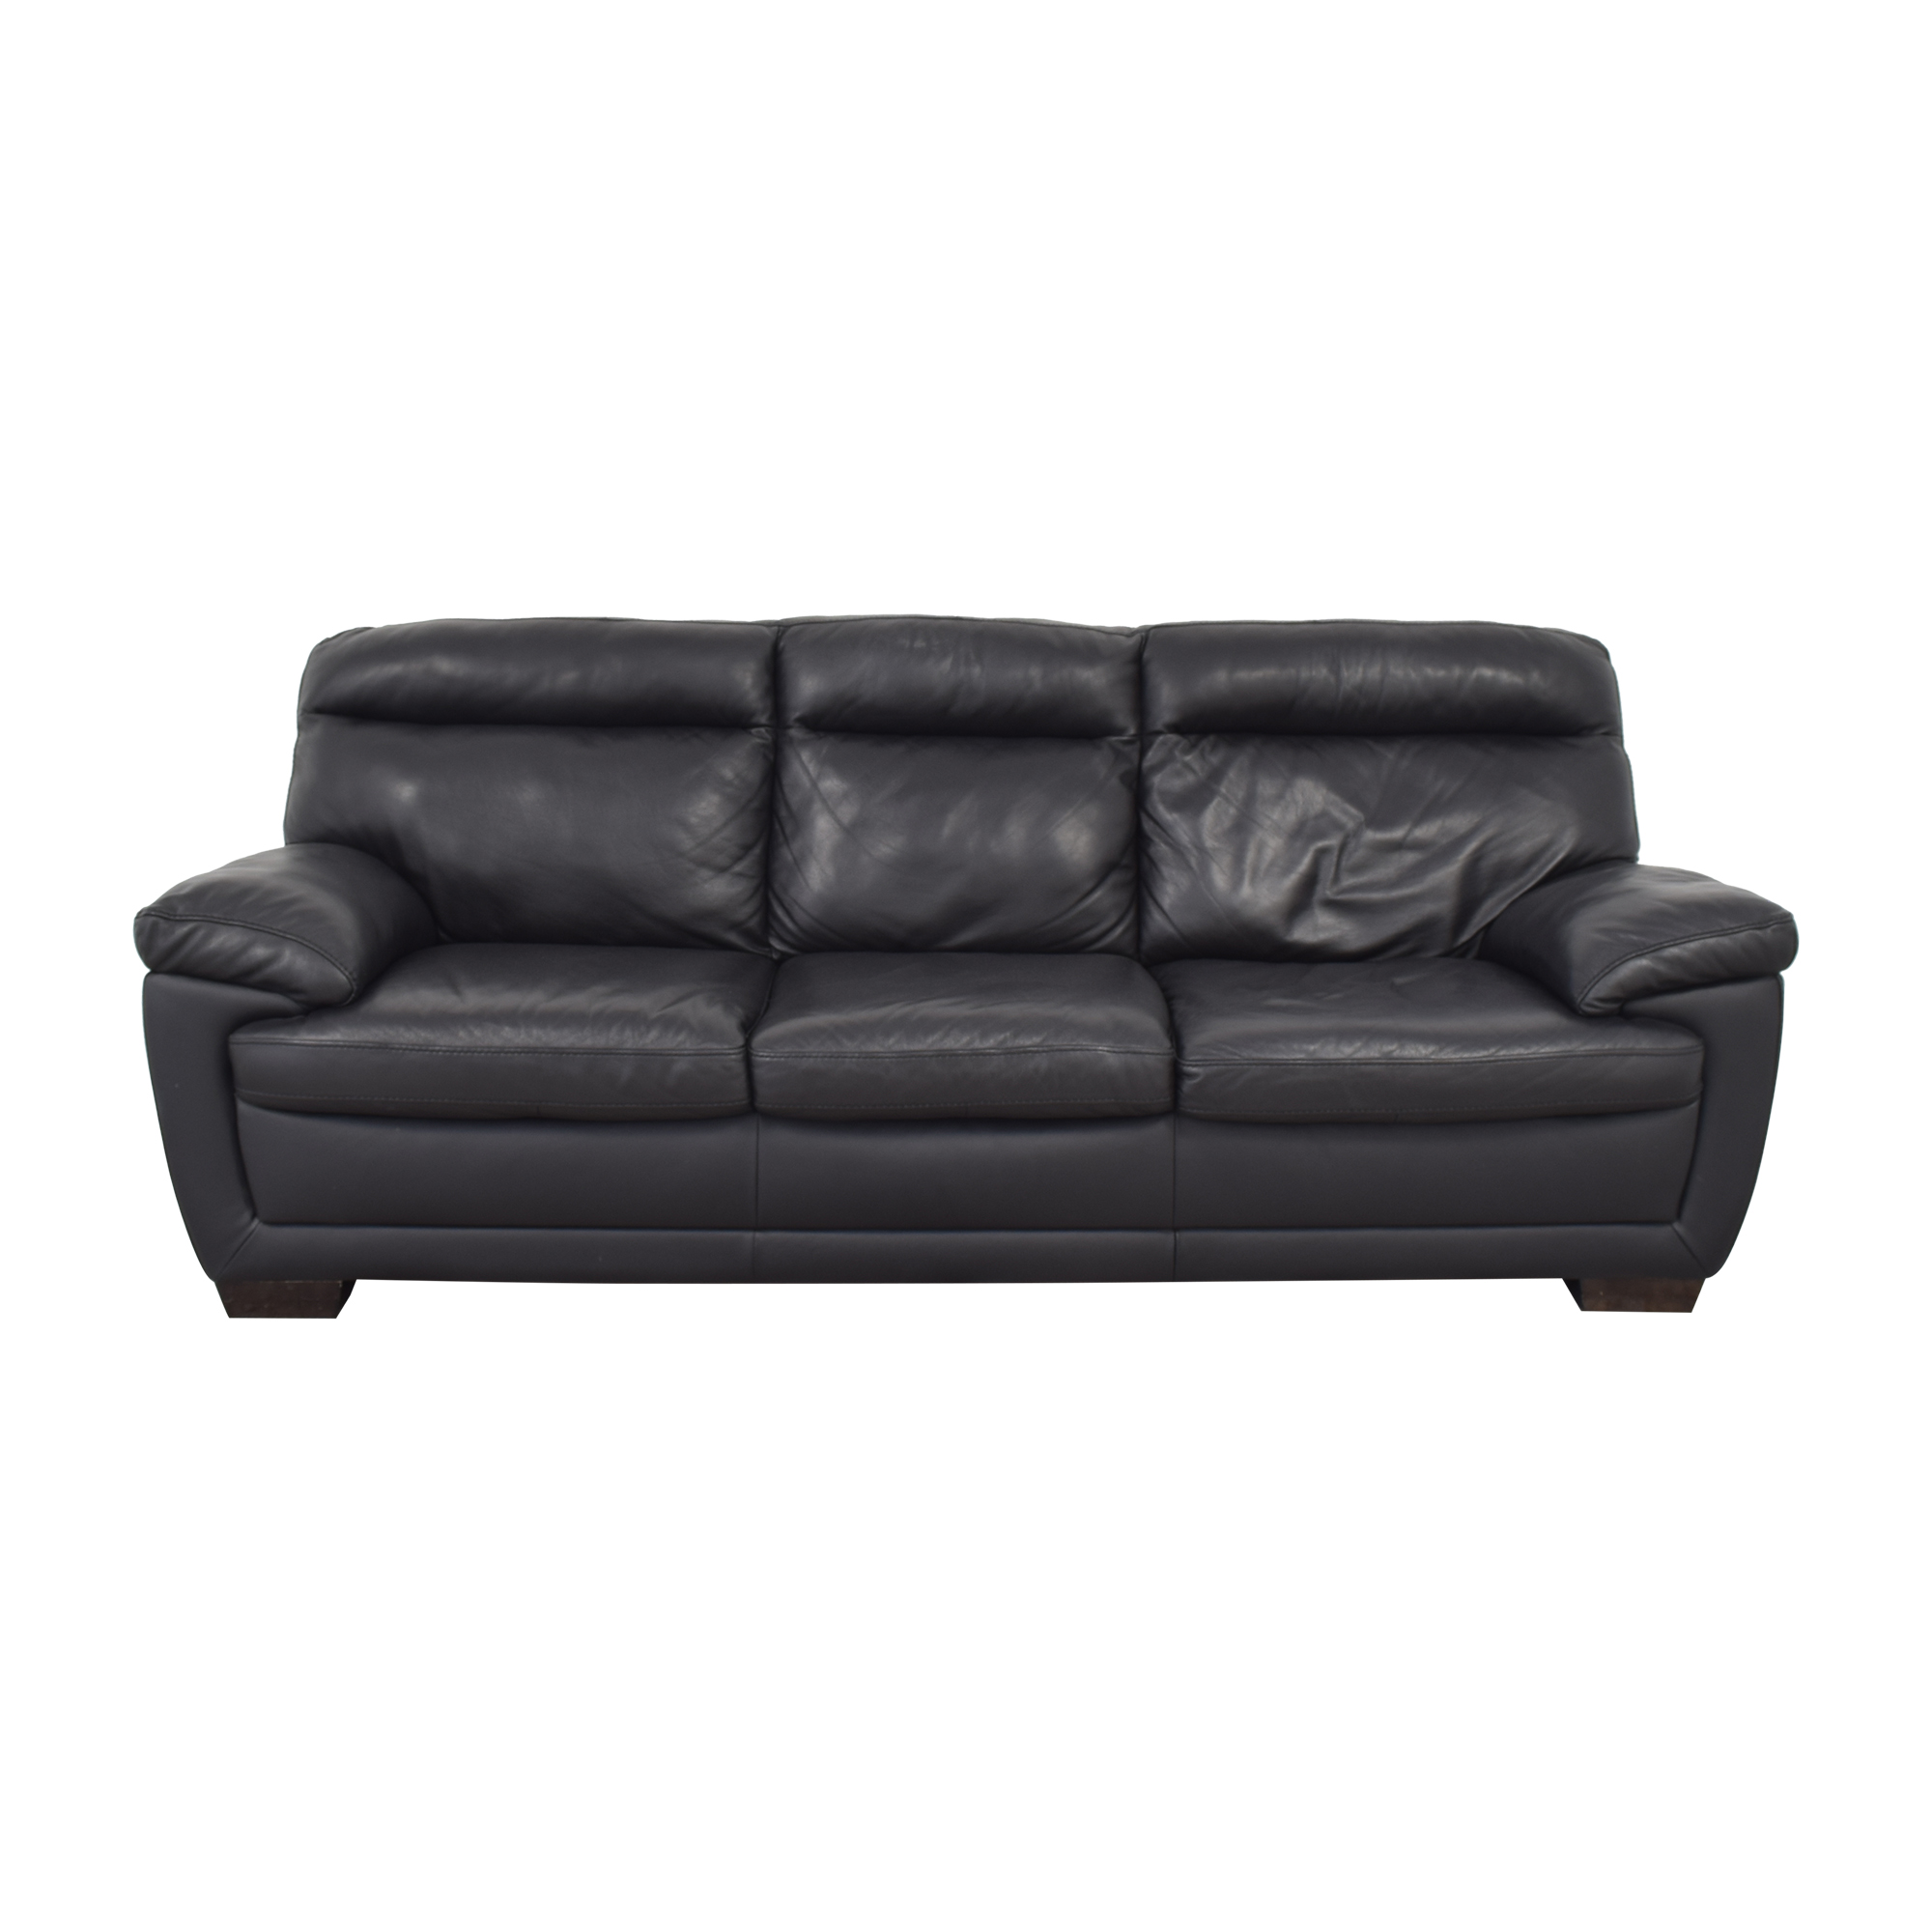 Macy's Macy's Three Cushion Sofa nj